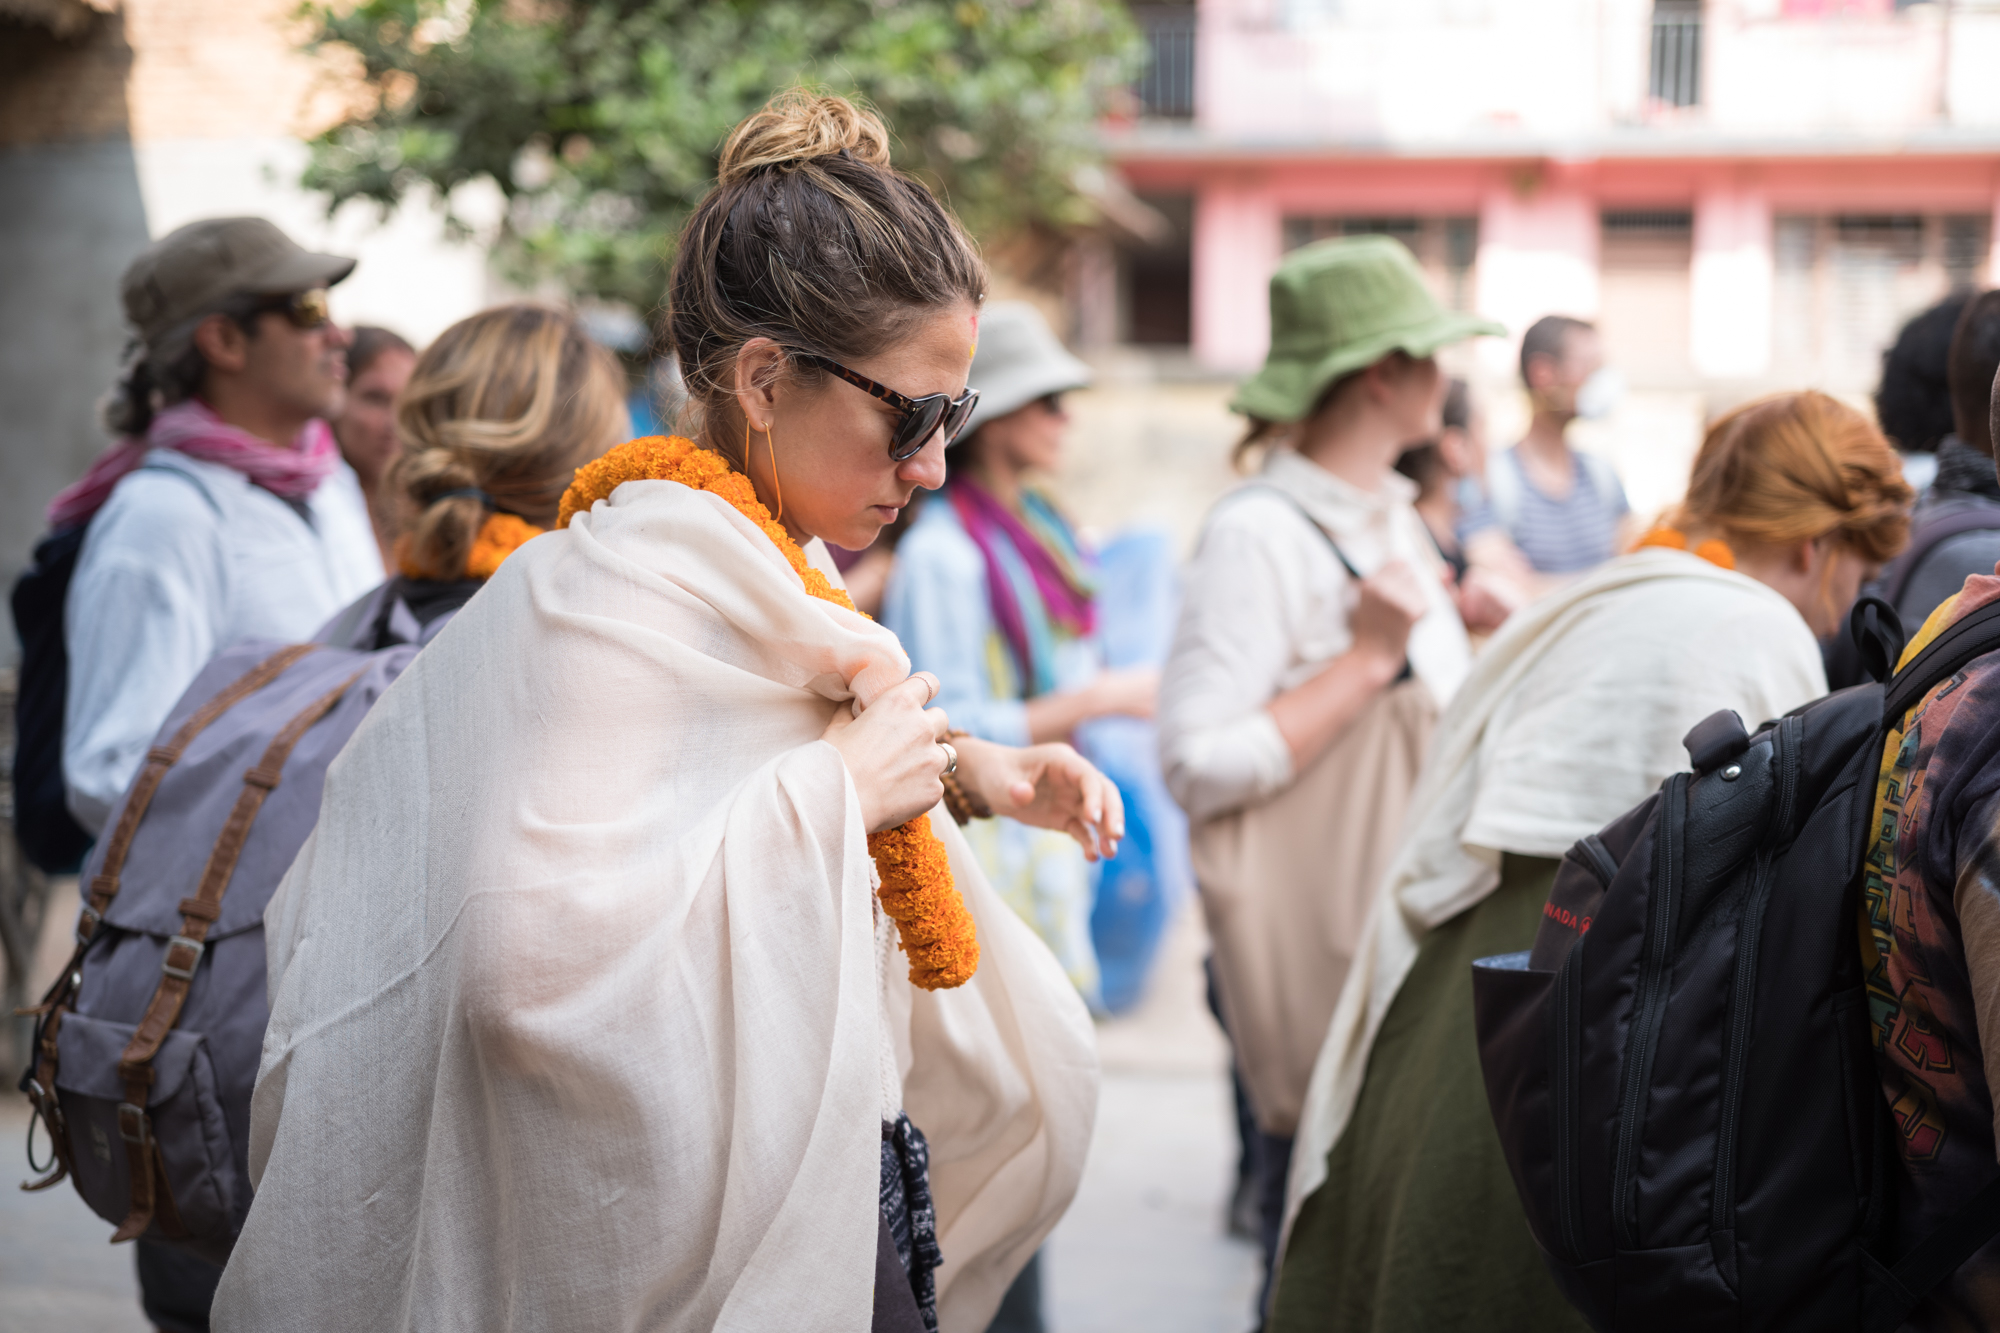 Nepal_Phill O'Leary_36_20181005-L1009845.jpg